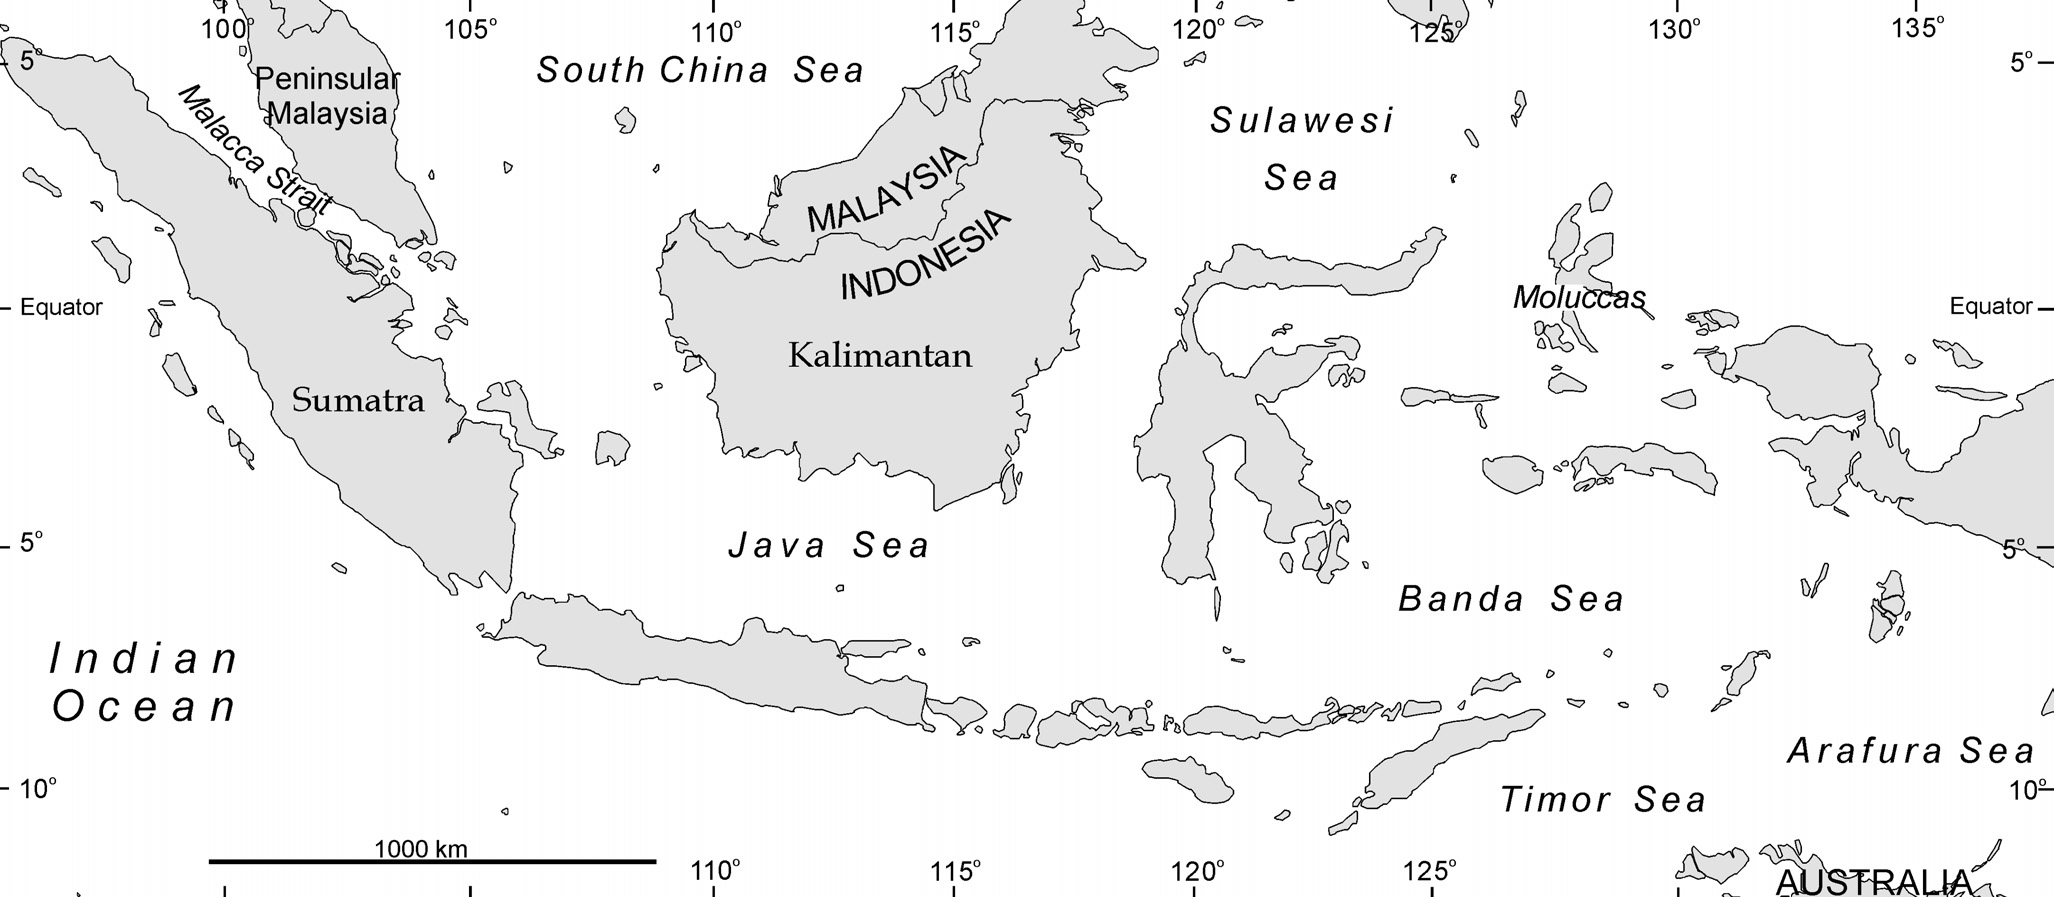 Figure 4.12 The Seas and Oceans of Indonesian waters. nutrients in rivers in crowded areas (SME 1996).